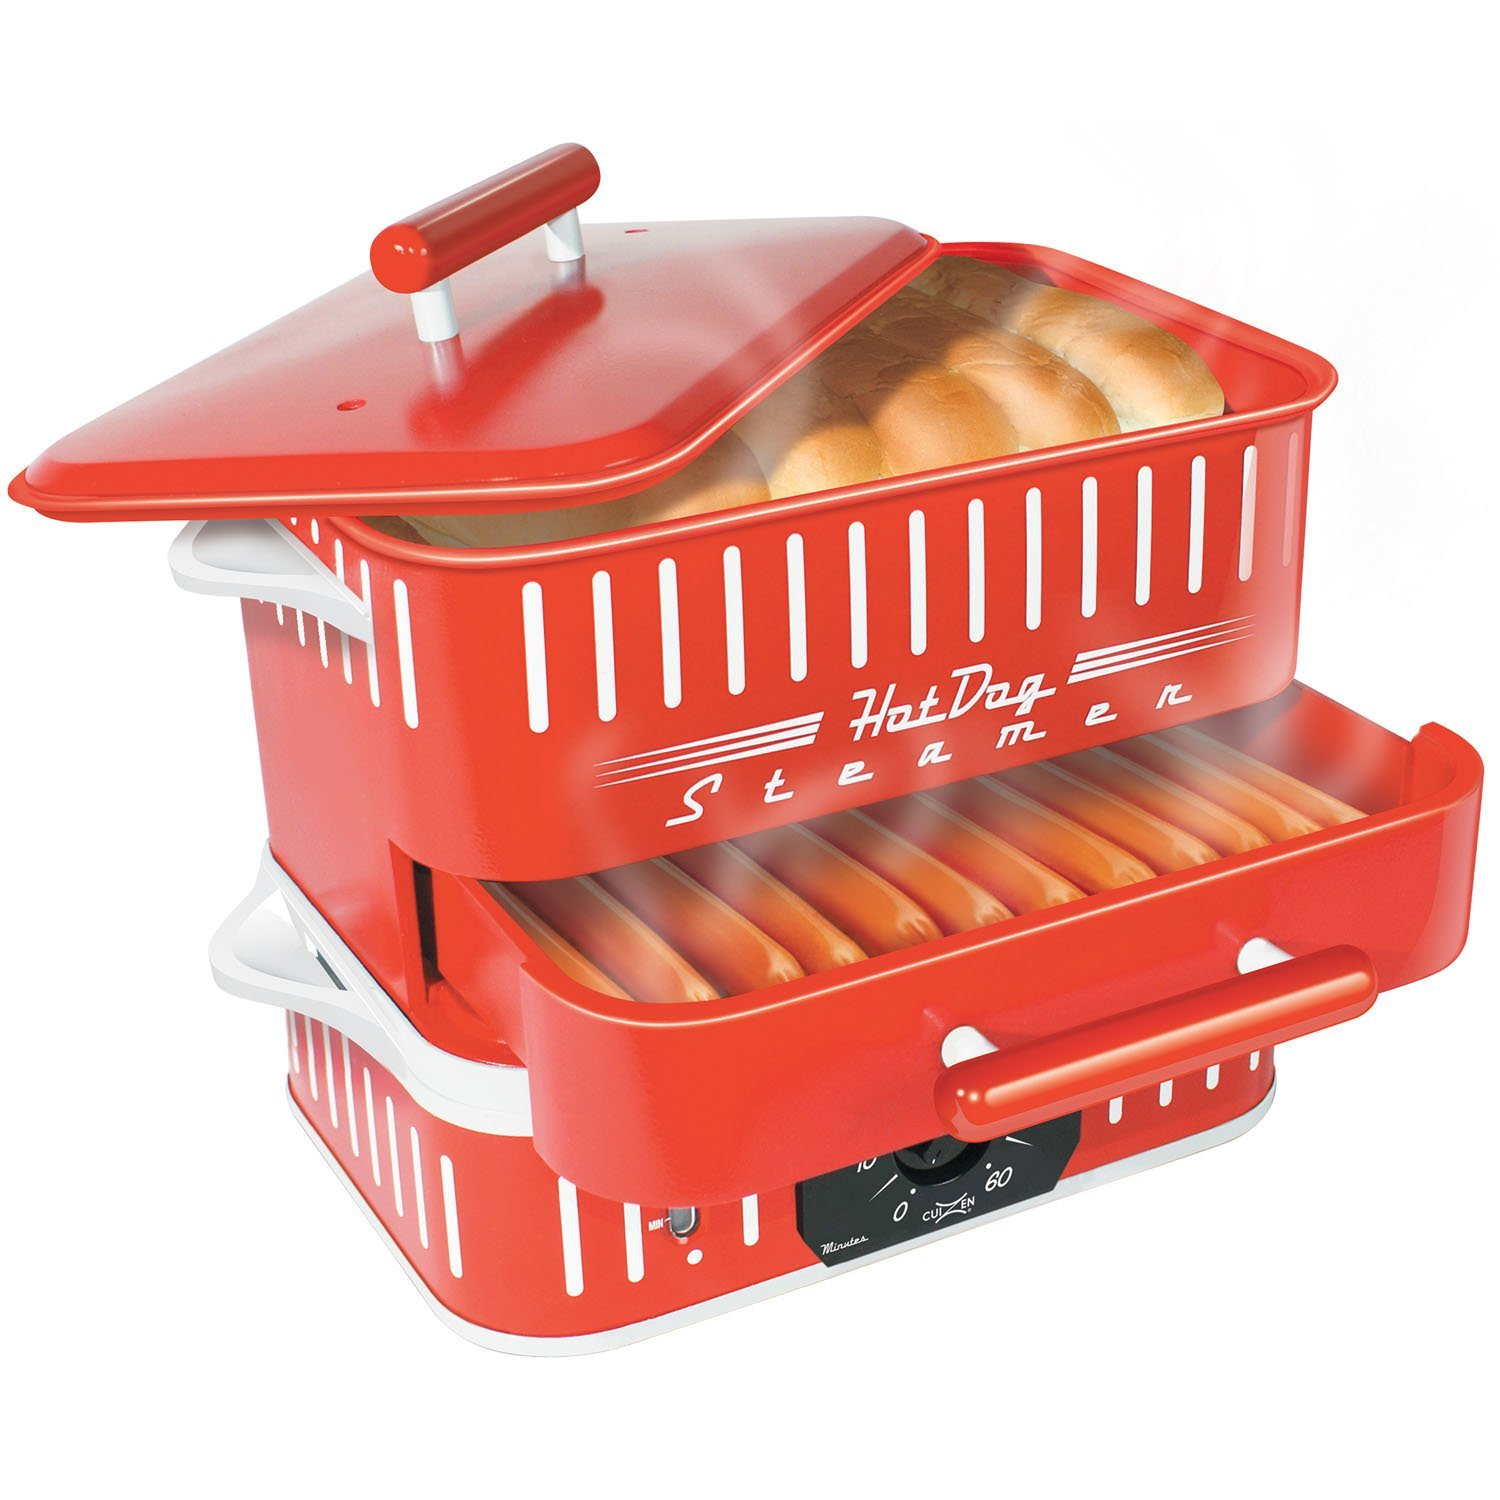 Cuizen CST-1412B Retro Hot Dog Steamer, Red